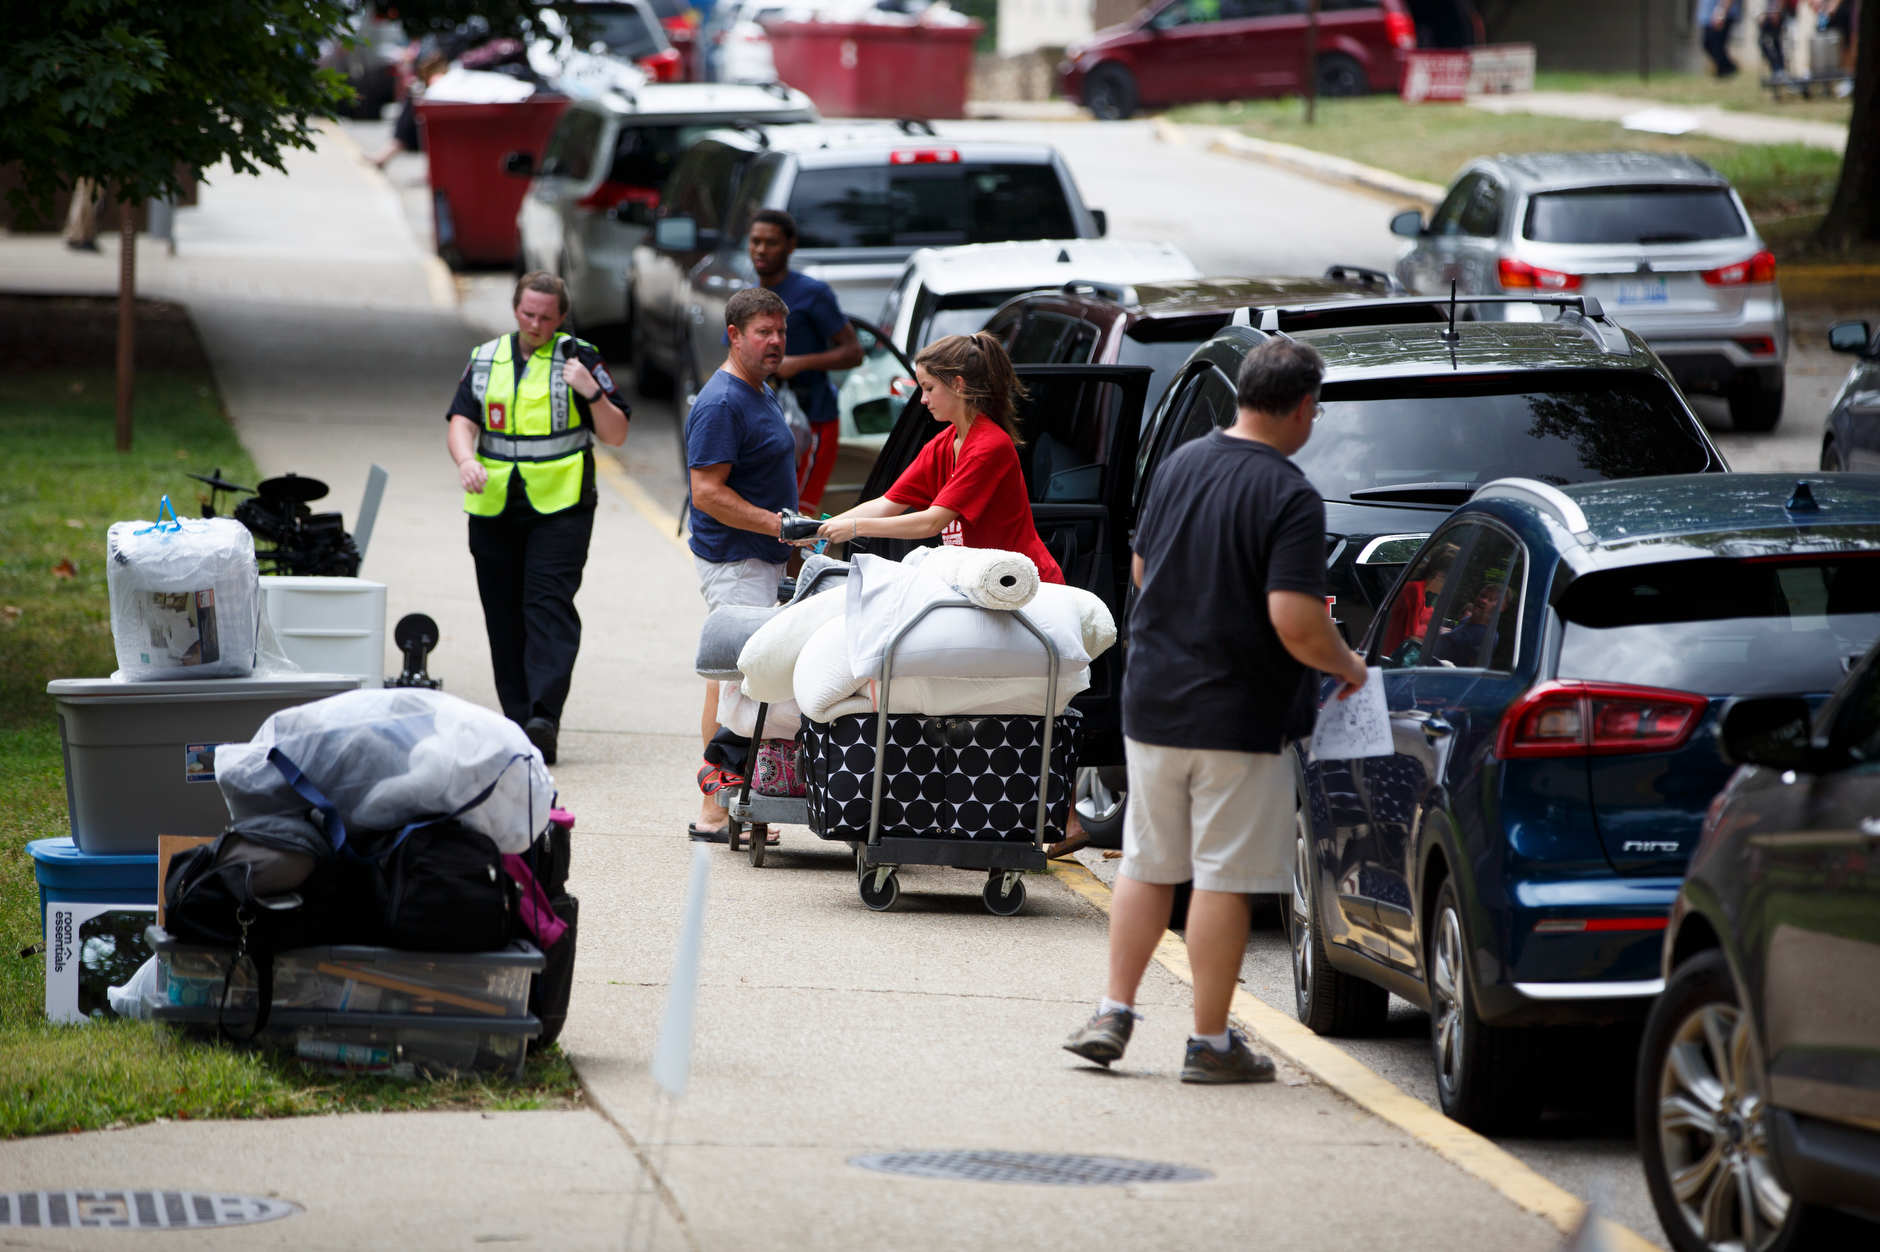 Students and parents unload vehicles outside of Wright Quad during IU Bloomington move-in on Tuesday, Aug. 20, 2019. (James Brosher/Indiana University)